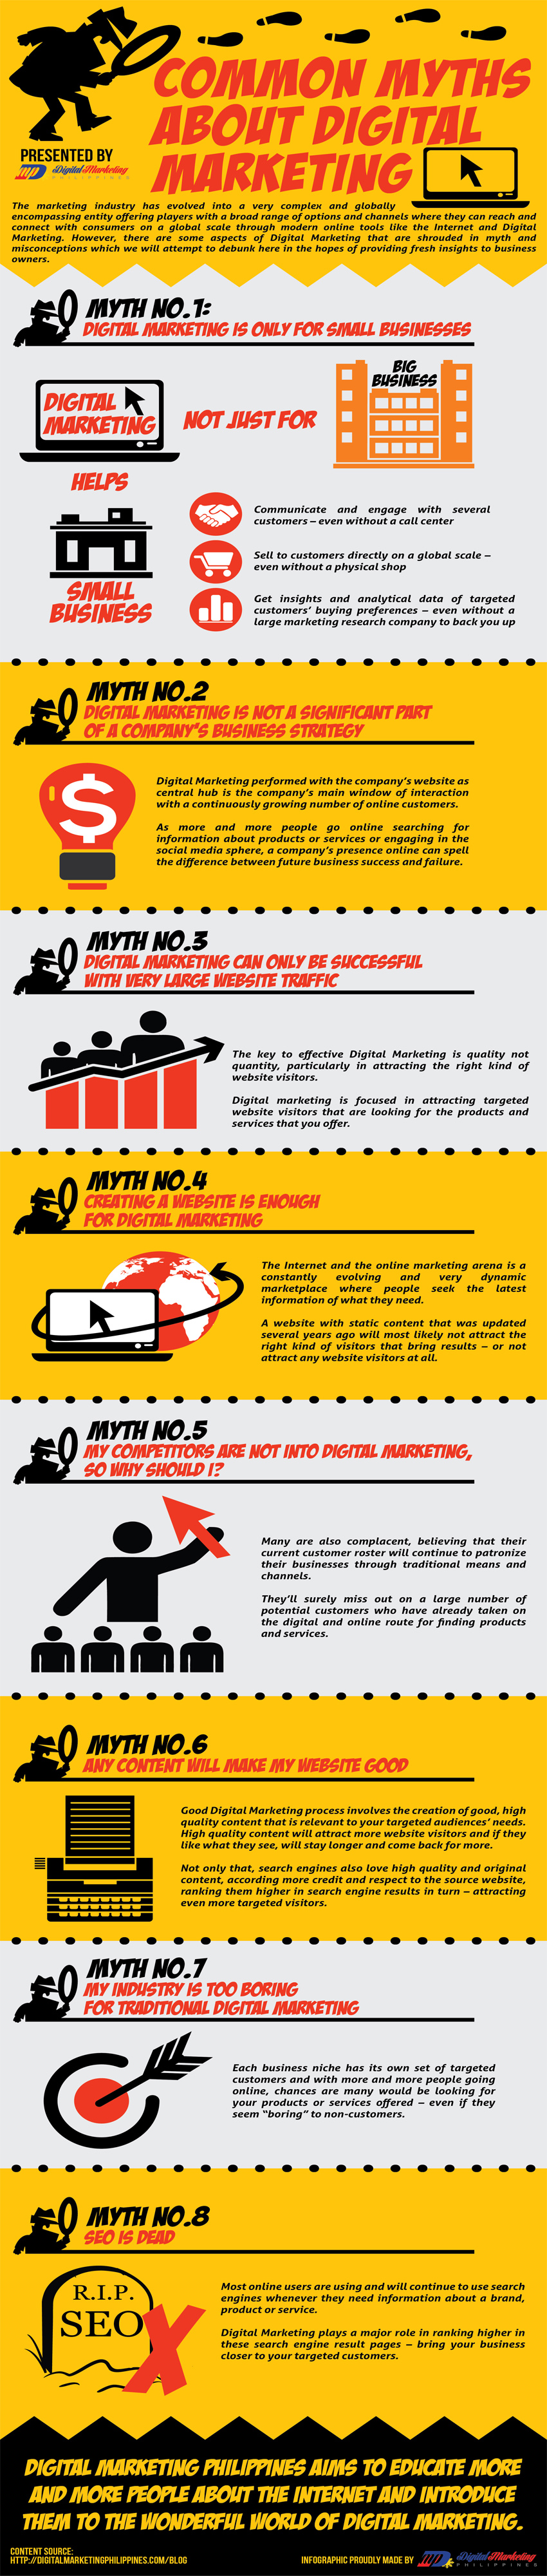 Common Myths about Digital Marketing